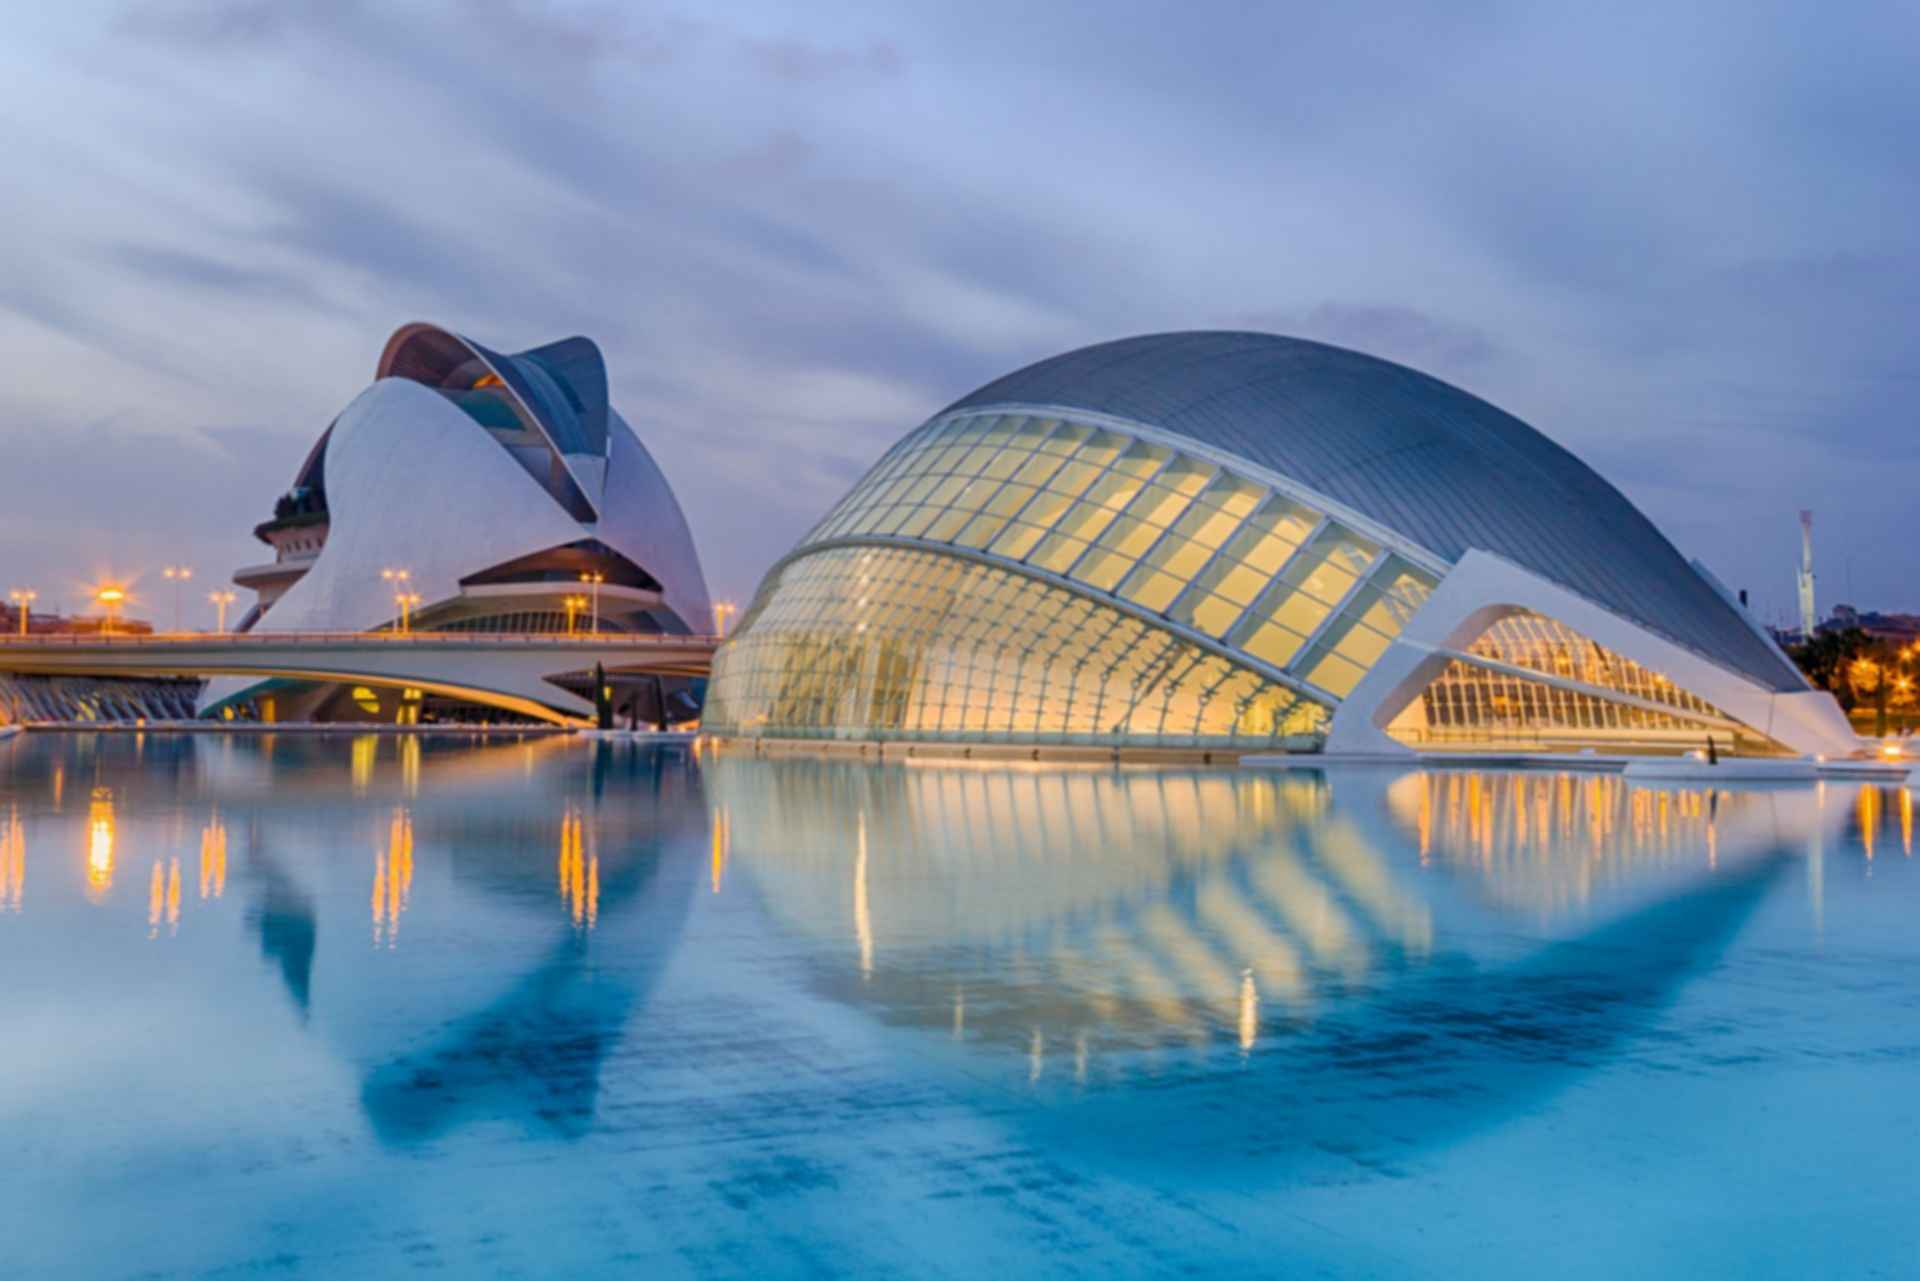 City of Arts and Sciences - Exterior